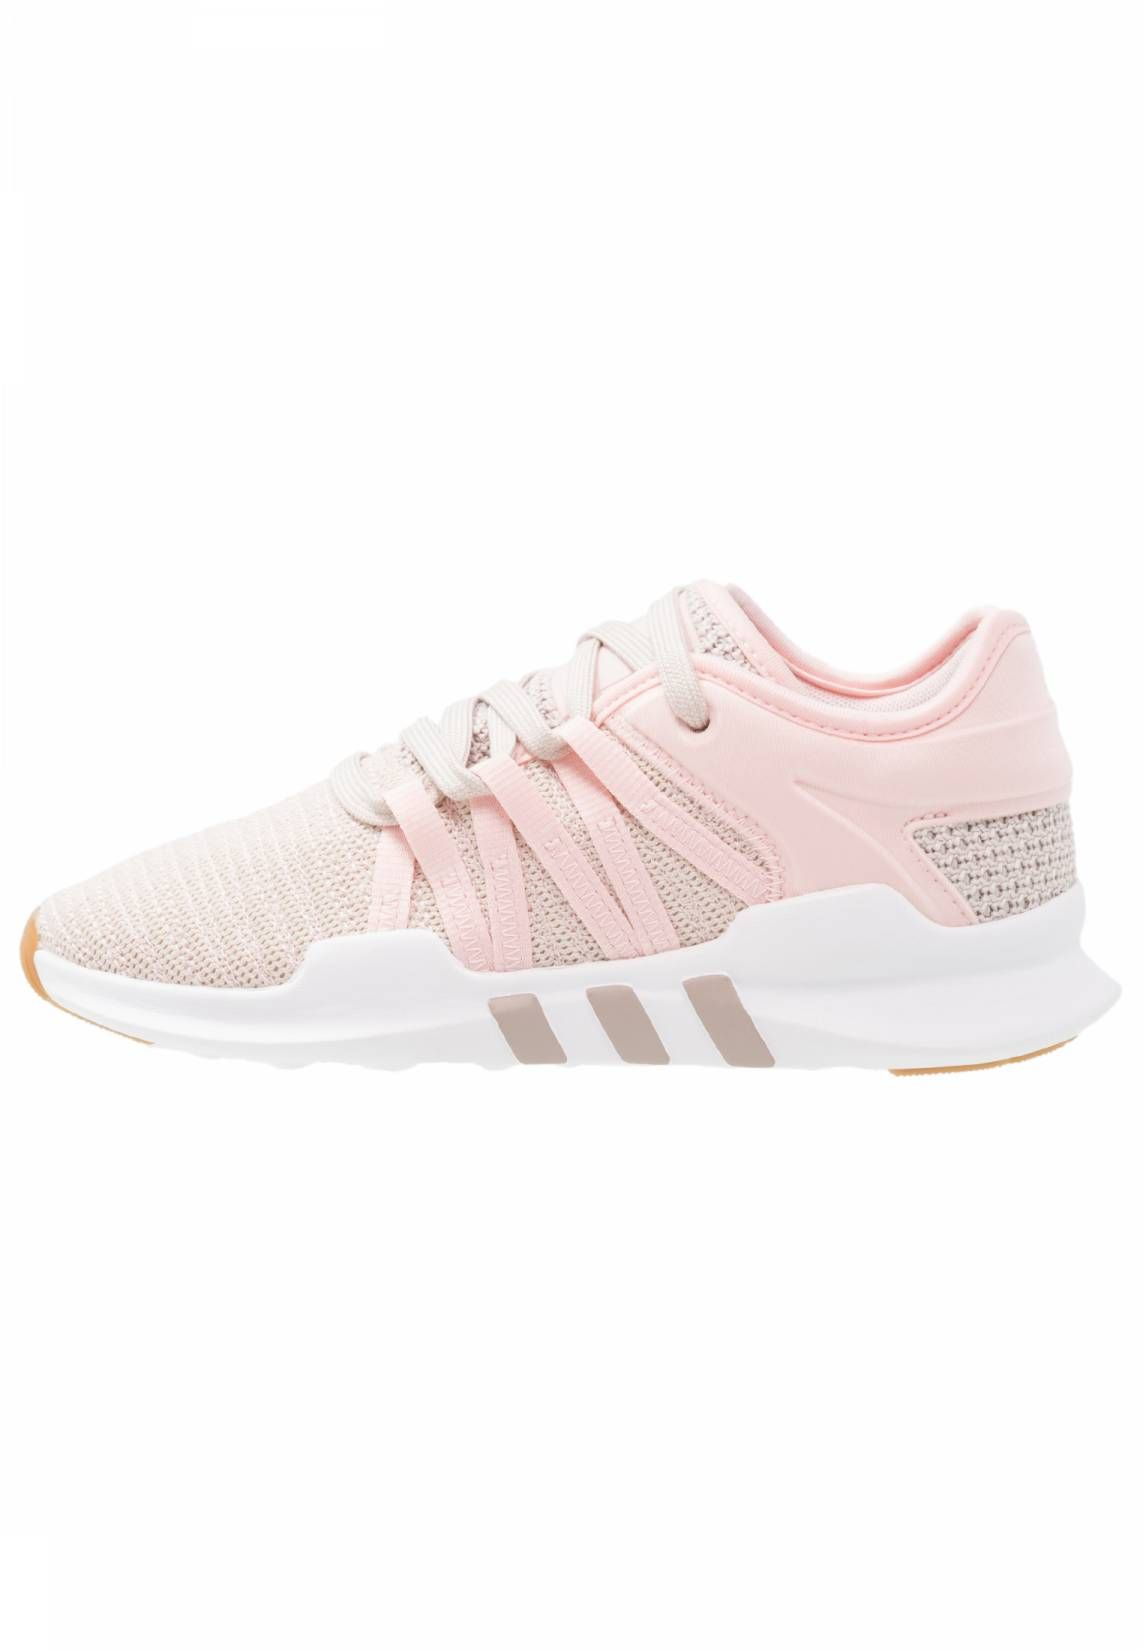 premium selection b462a 65629 adidas Originals. EQT RACING ADV - Sneakers basse - clear brownice pink